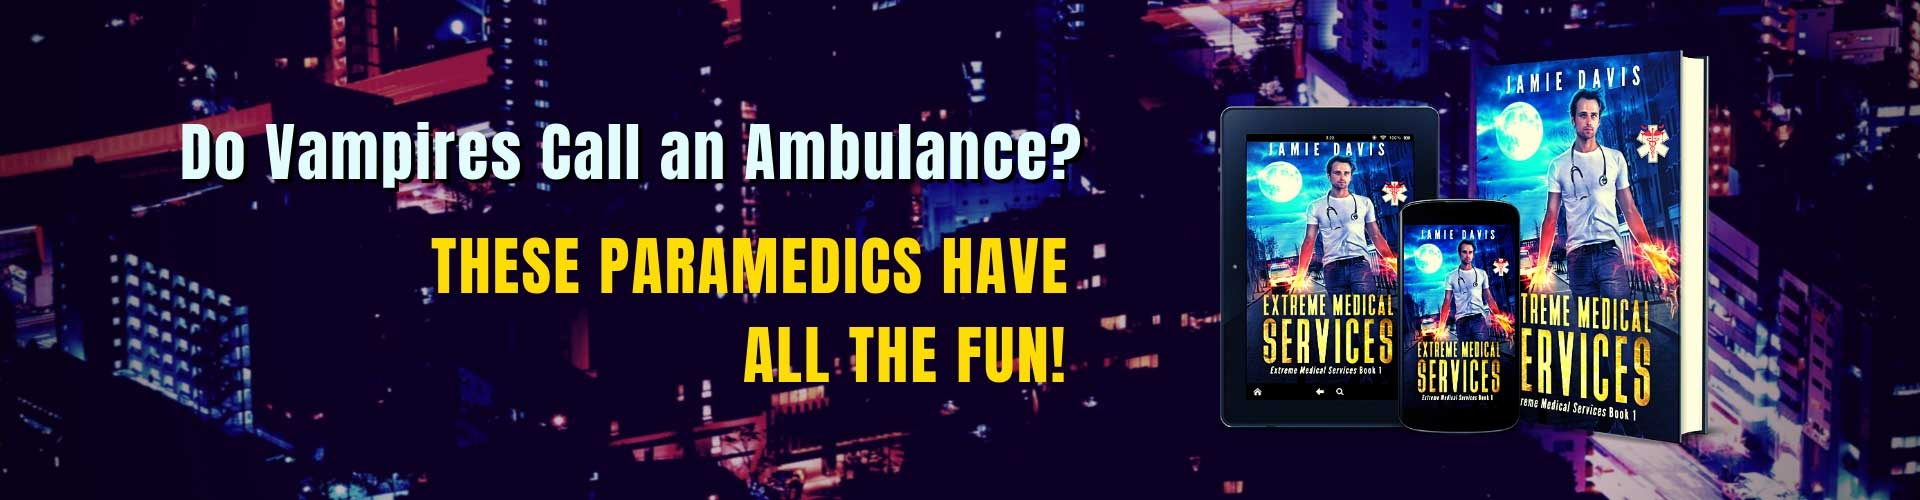 Extreme Medical Services Supernatural Paramedic Urban Fantasy Series